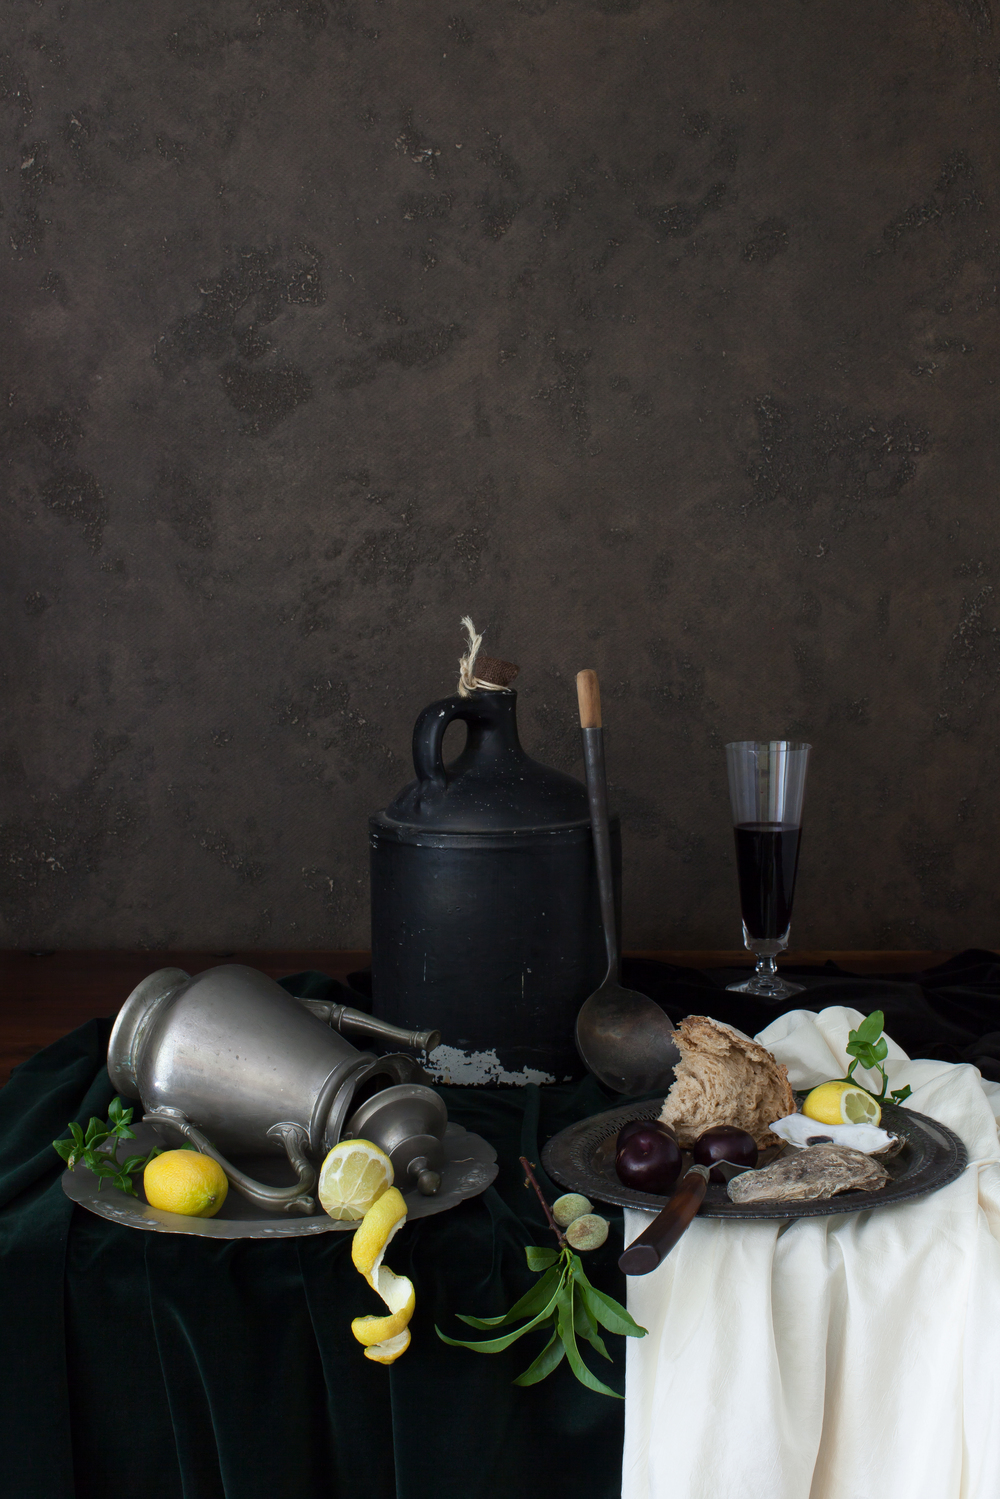 Dutch Table Still Life 2014